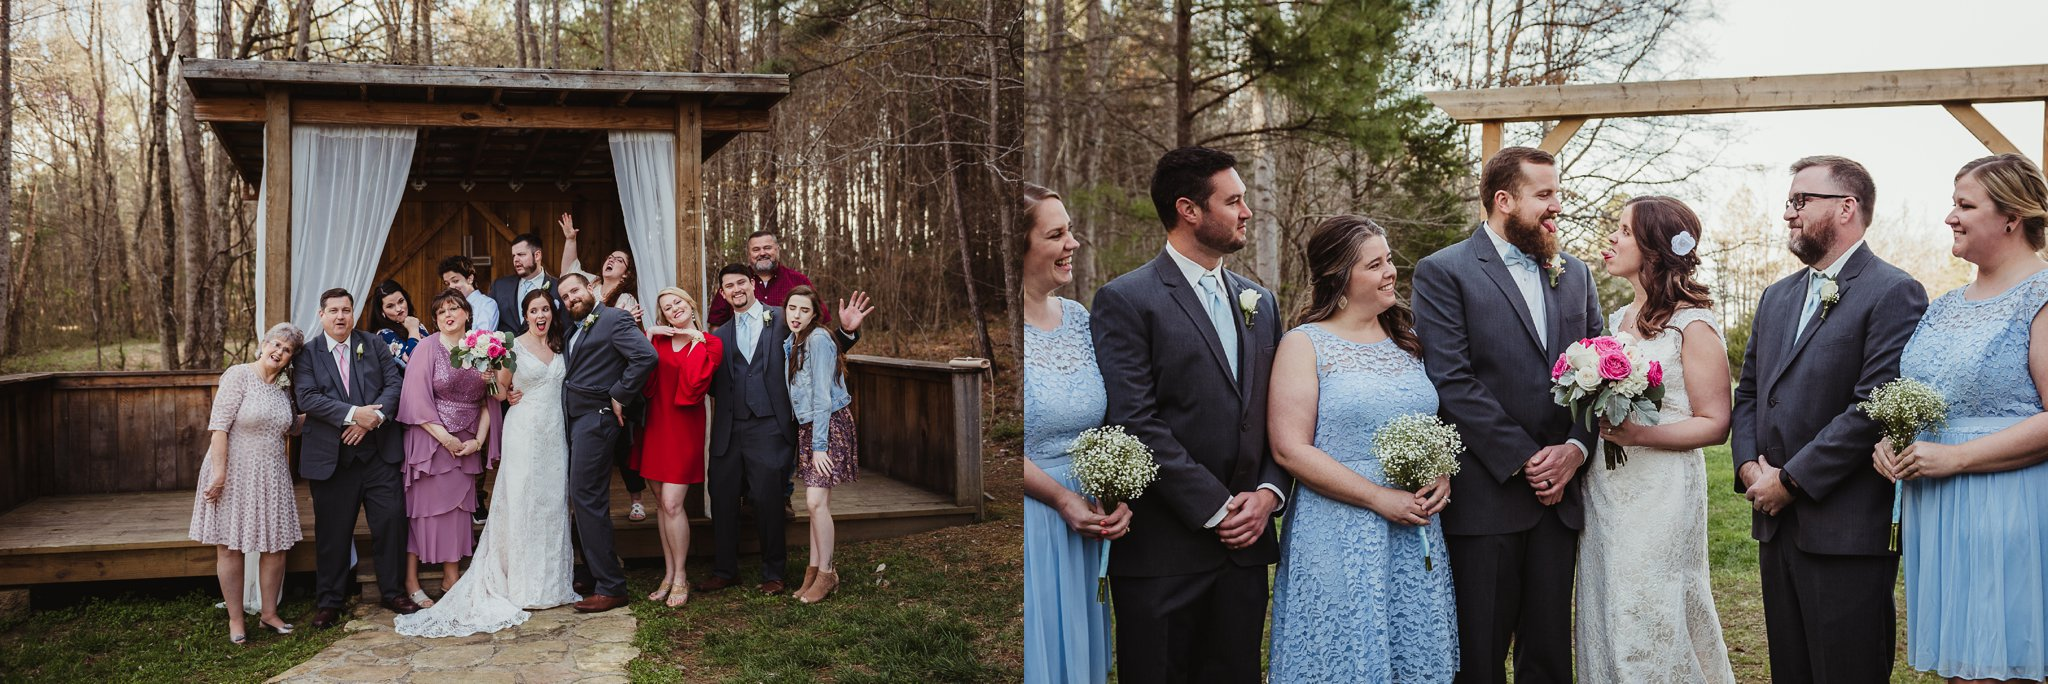 It's always fun to be silly and have a good time during wedding portraits! Images taken by Rose Trail Images at Carlee Farms in Oxford, NC.